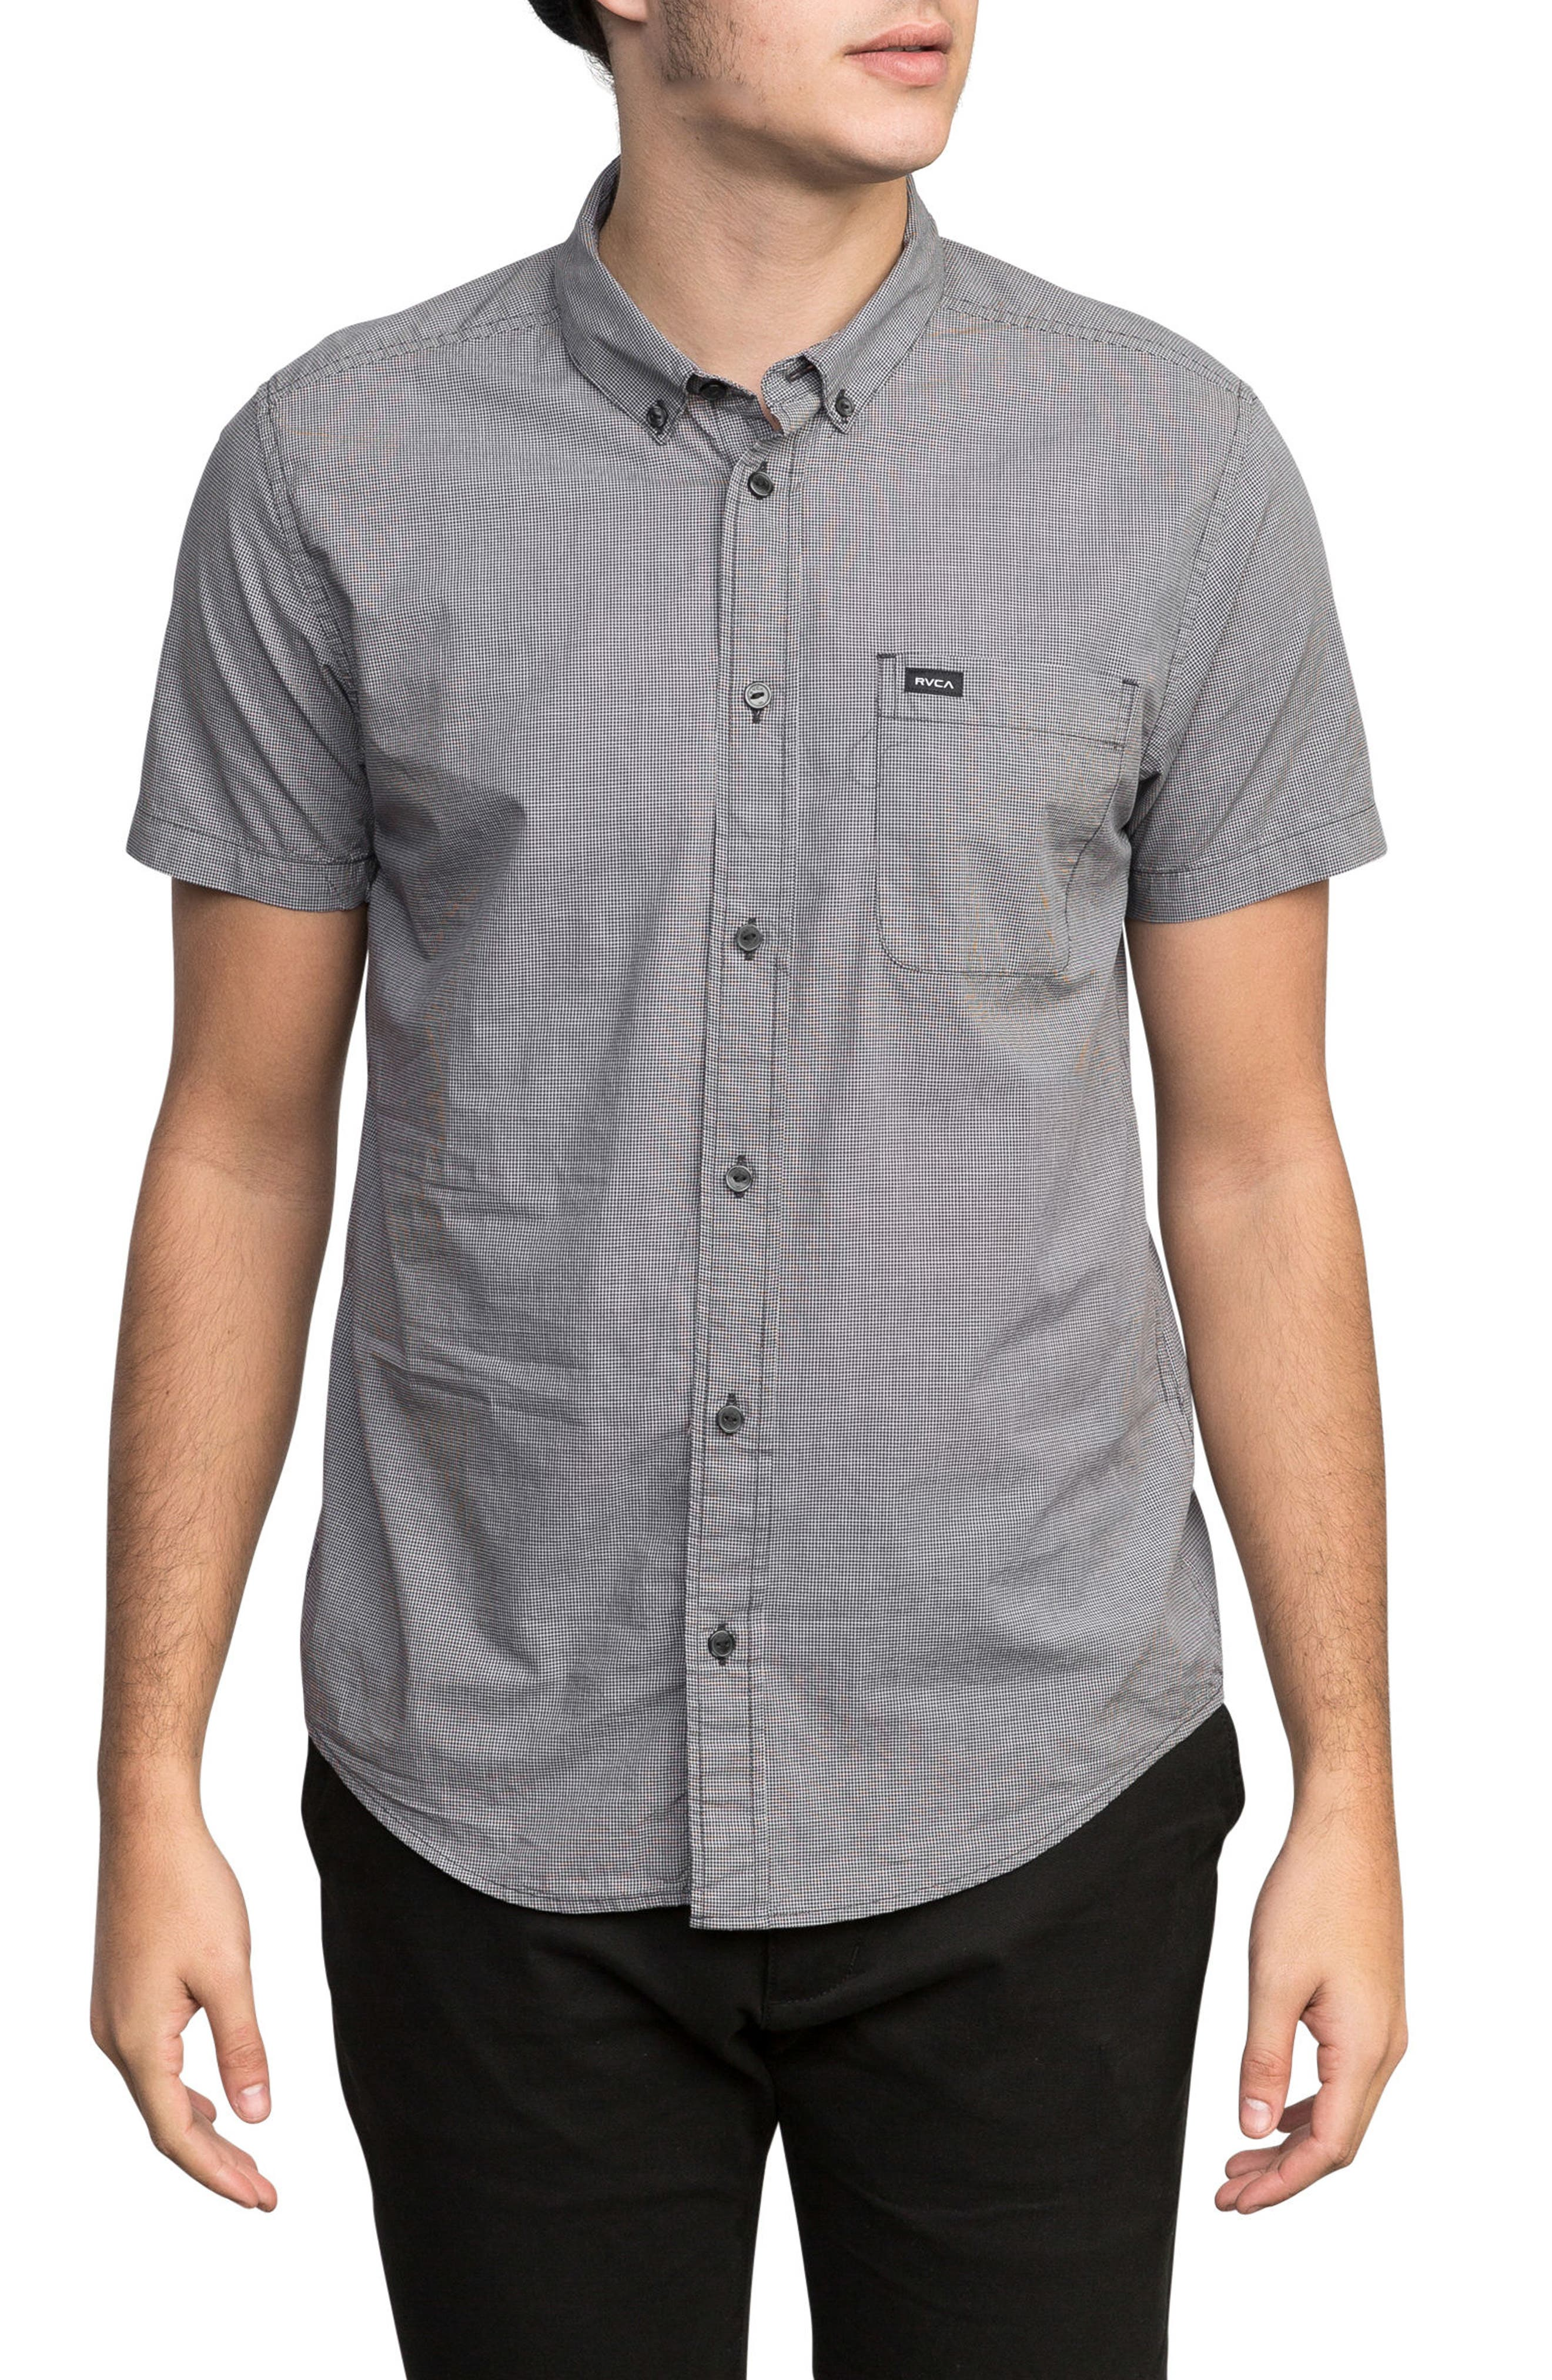 'That'll Do' Slim Fit Microdot Woven Shirt,                         Main,                         color, Slate